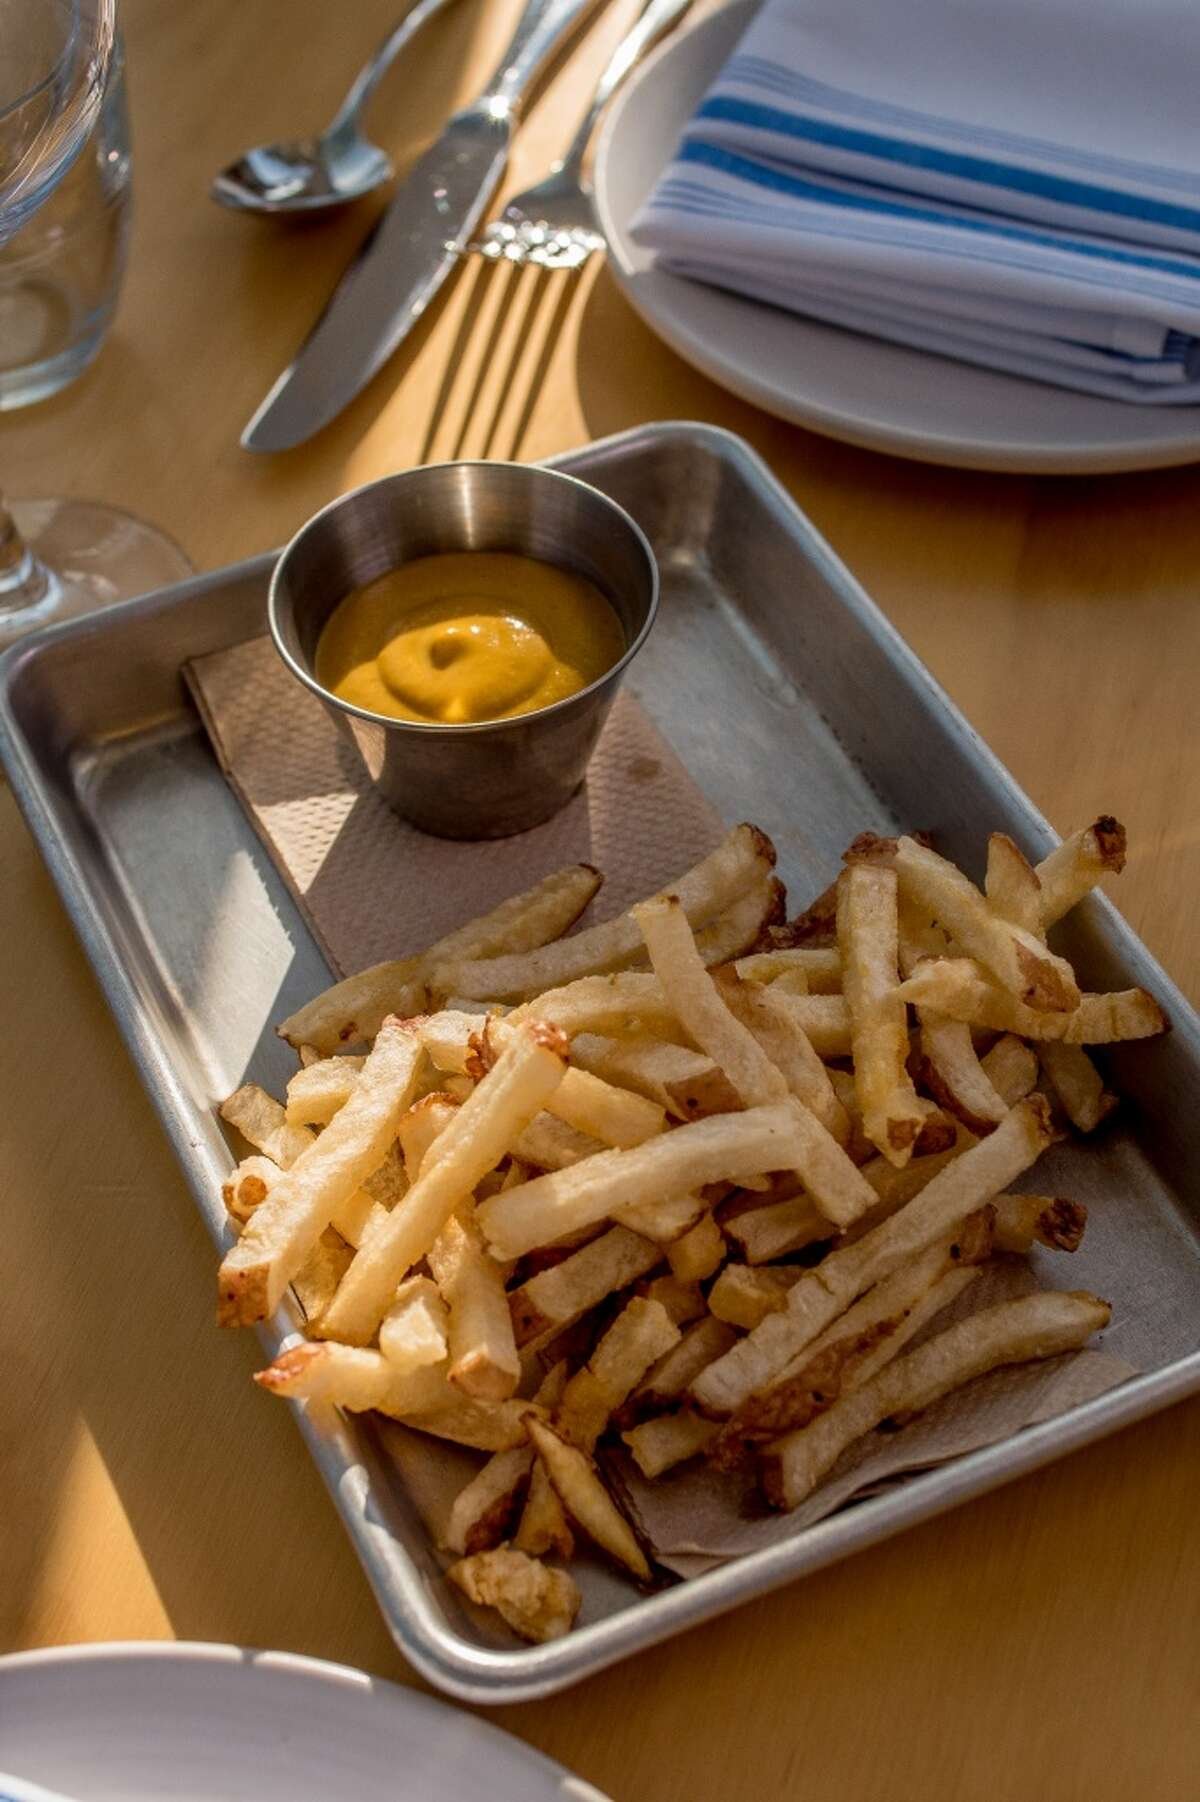 The French Fries with smoked Apple sauce at Al's Place in San Francisco, Calif., are seen on Thursday, April 2nd, 2015.